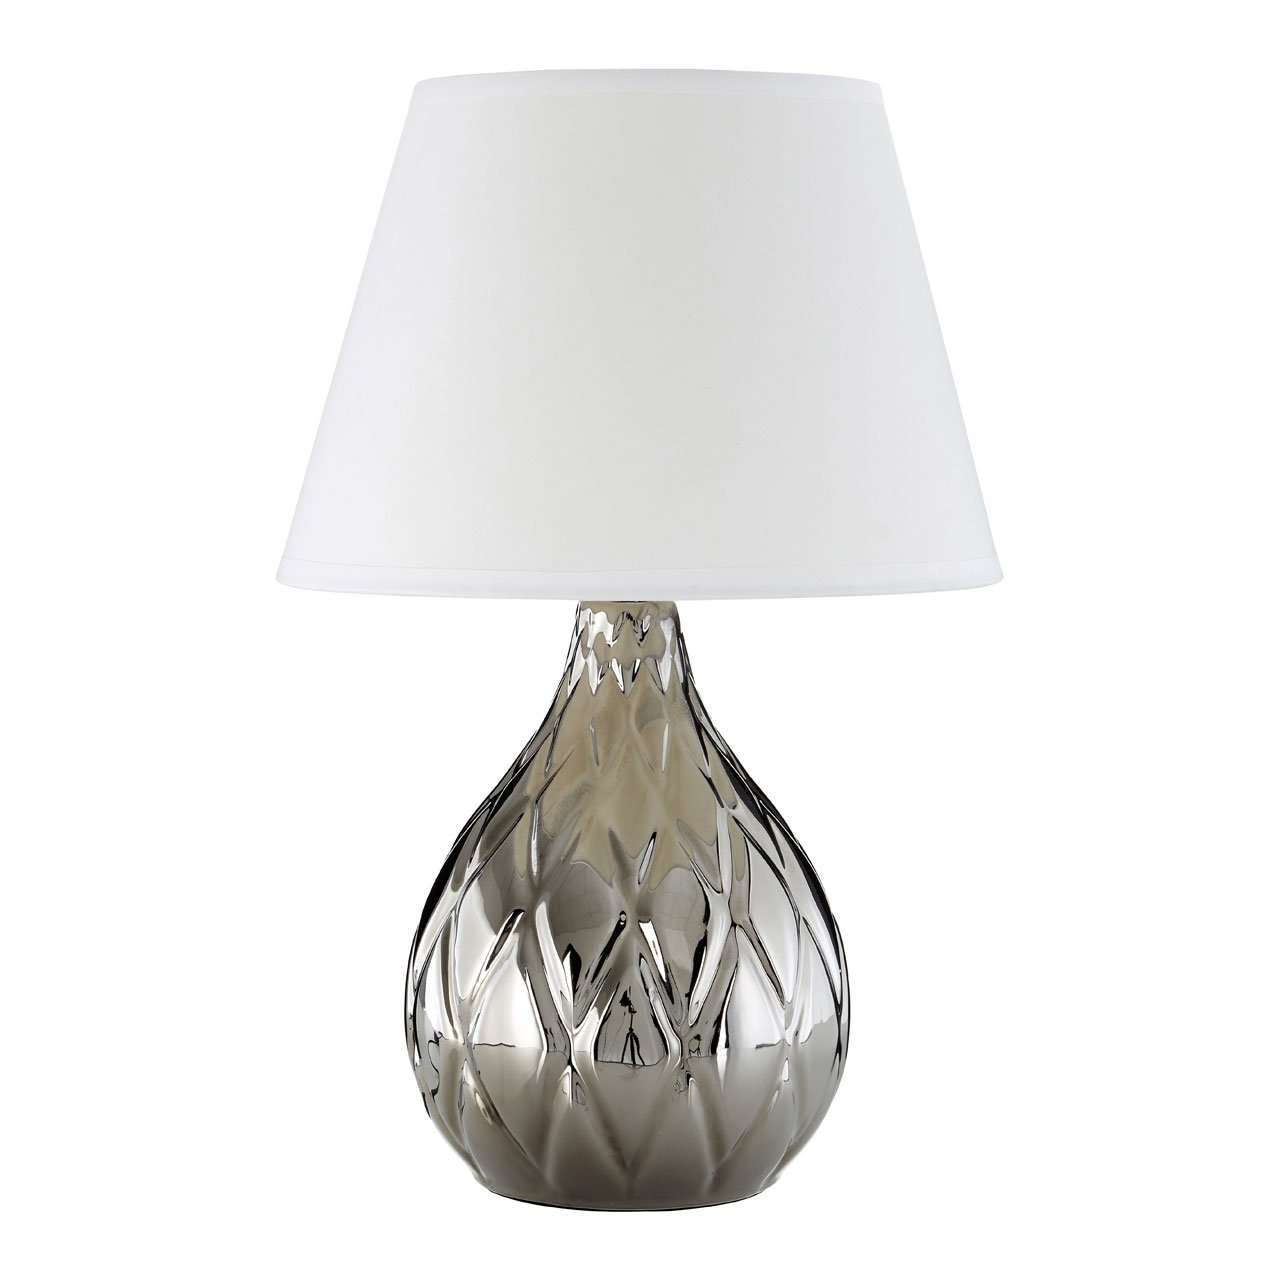 Hannah Silver Ceramic Table Lamp With White Shade